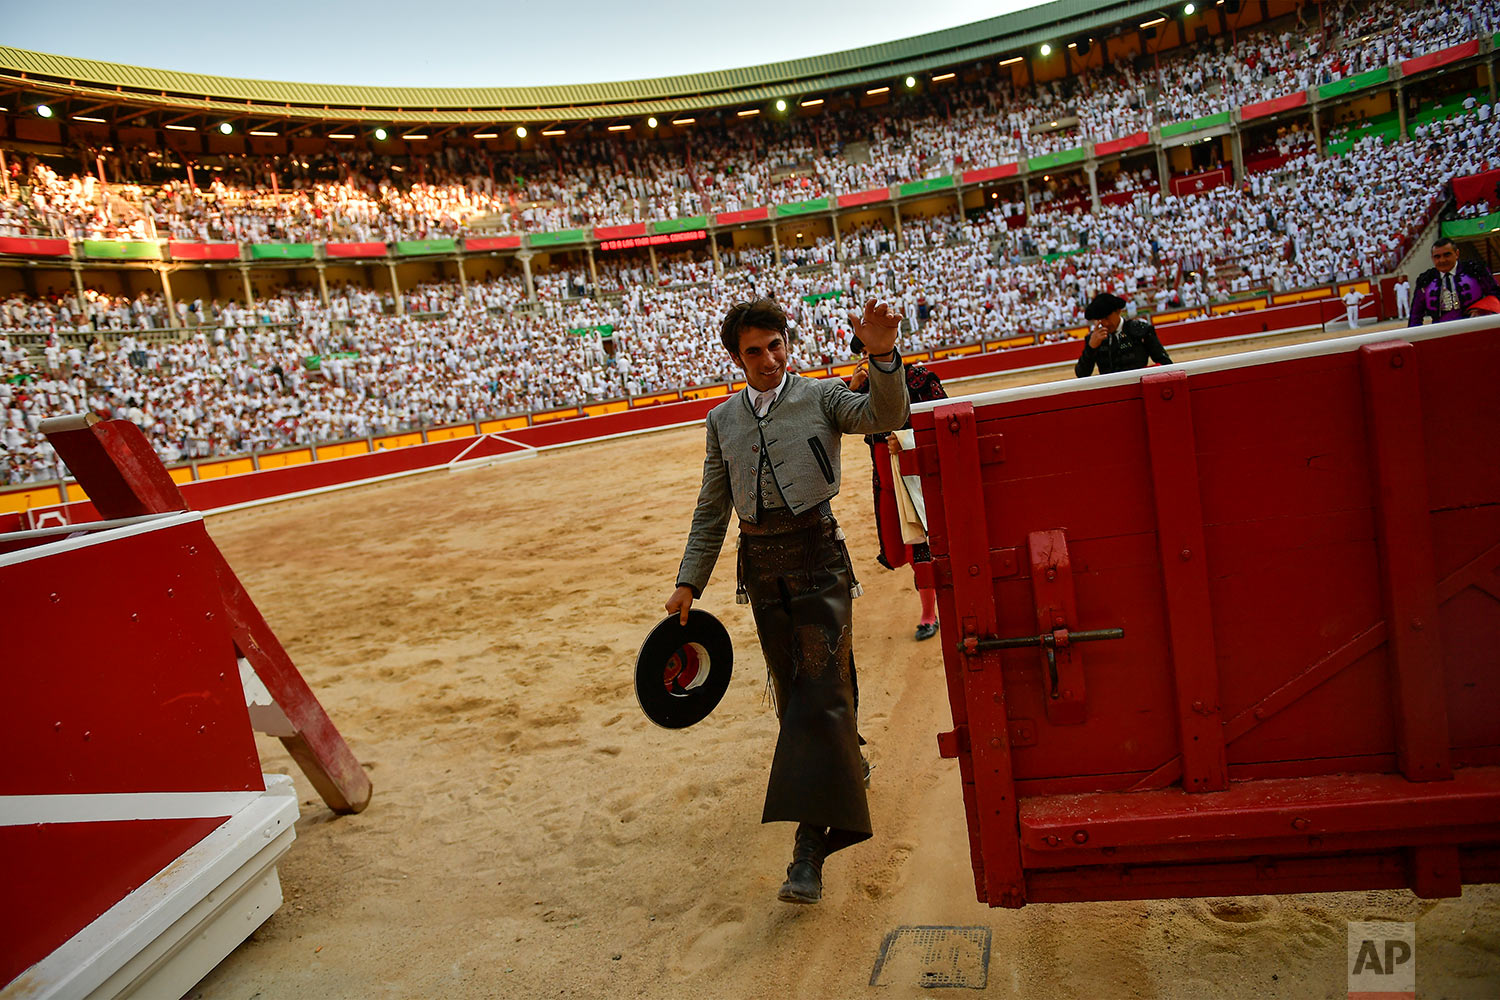 Roberto Armendariz, 33, Spanish ''rejoneador'' or mounted bullfighter, waves at the end of his performance during a horseback bullfight at San Fermin Fiestas, northern Spain, July 6, 2019. (AP Photo/Alvaro Barrientos)